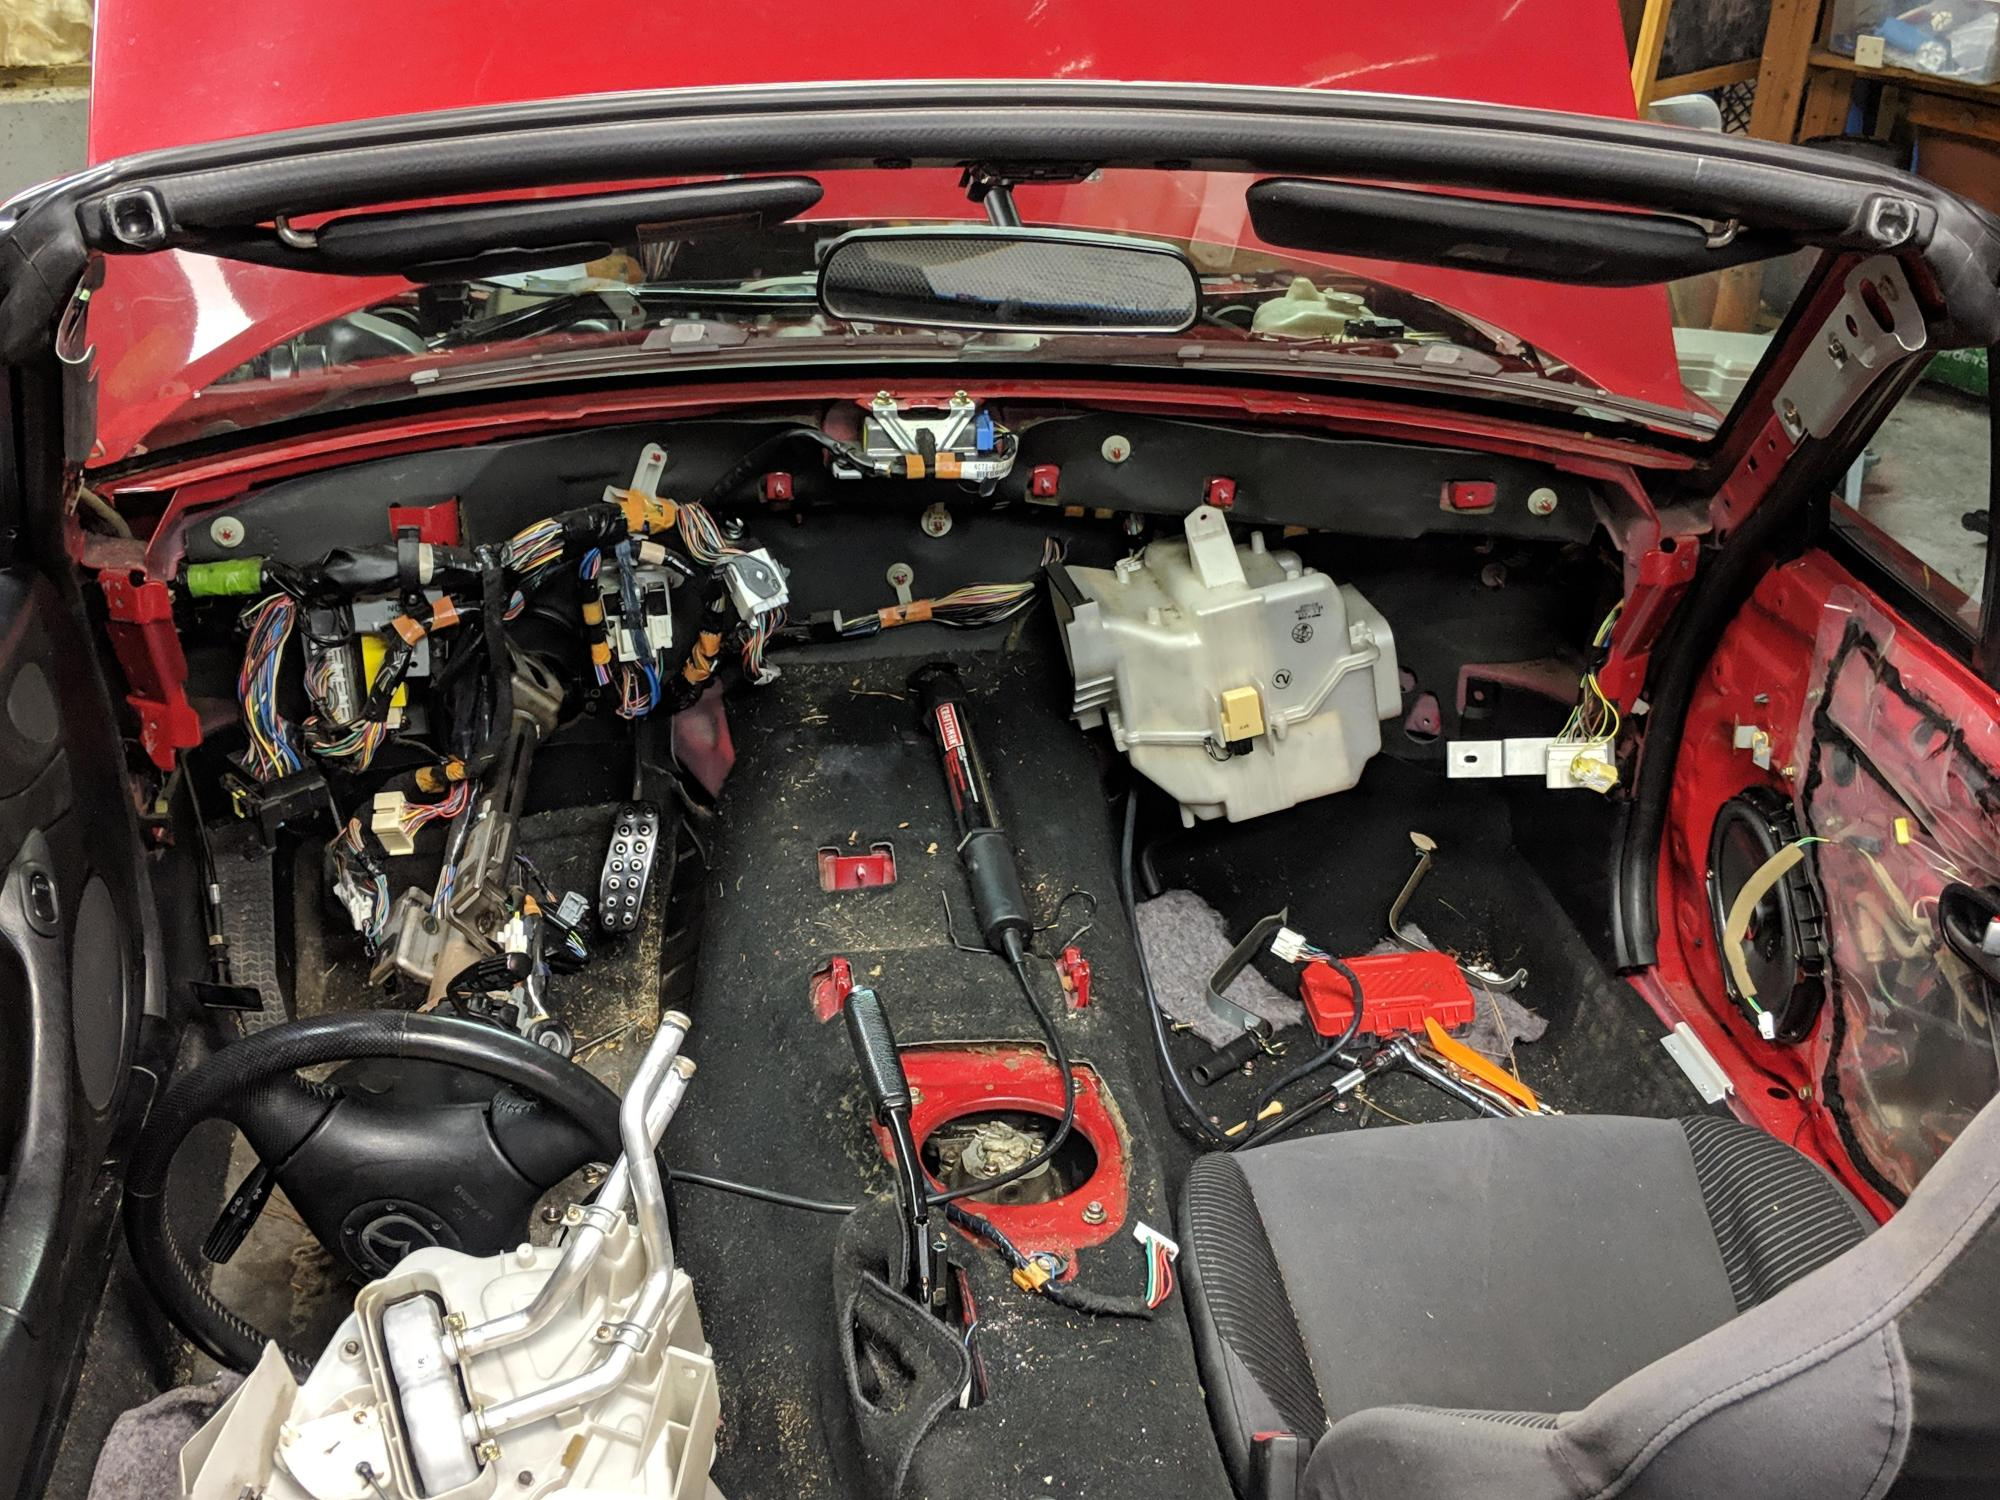 hight resolution of nb2005 nb replacing heater core mid progress chose to pull dash so i could clean ac coil and fan blower also tons of maintenance including foamectomy